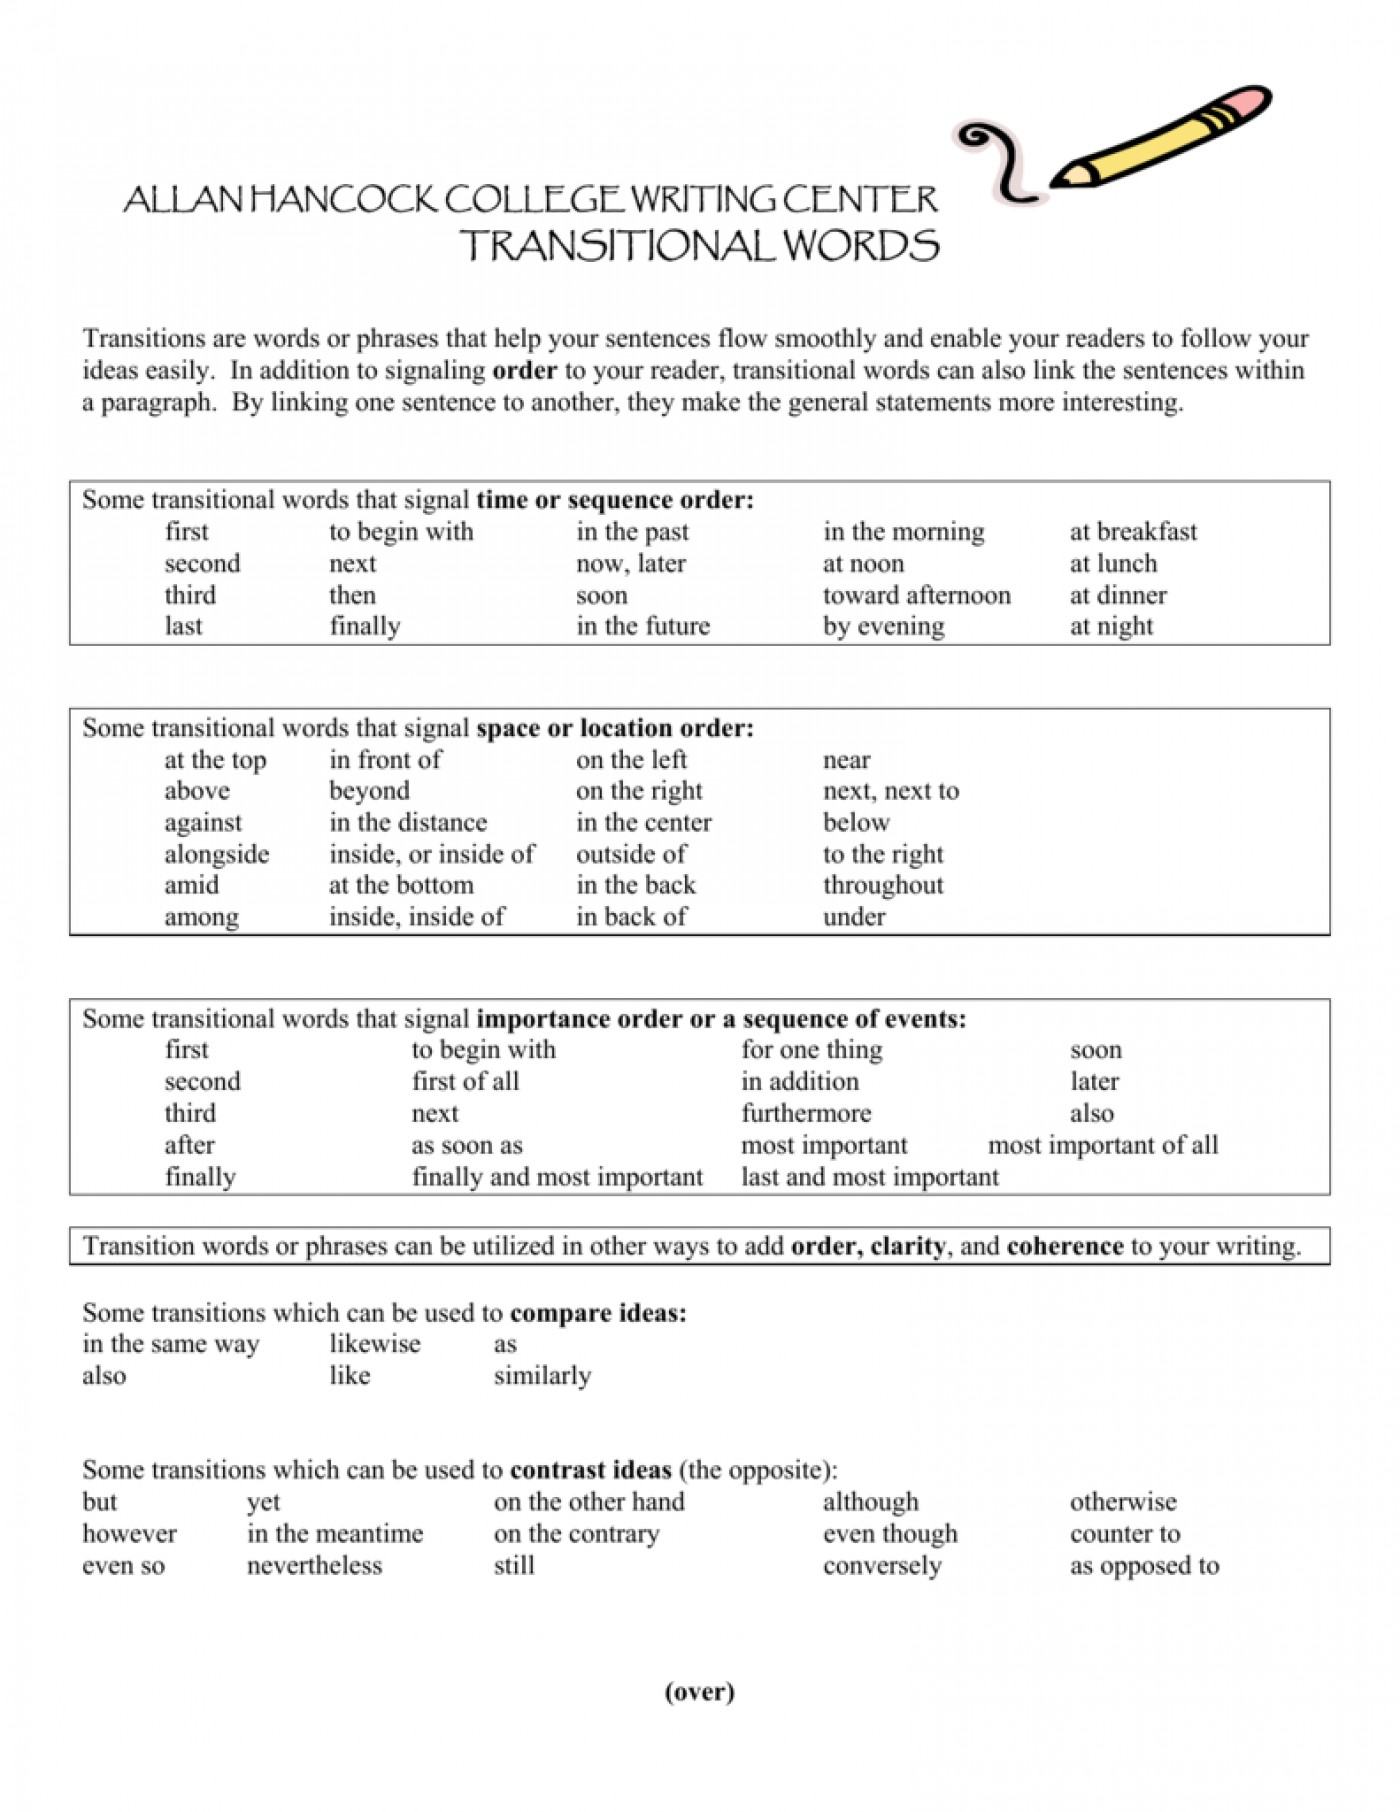 013 008142566 1 Transition Words For Essay Fascinating Essays Between Paragraphs Writing An Argumentative In Spanish 1400